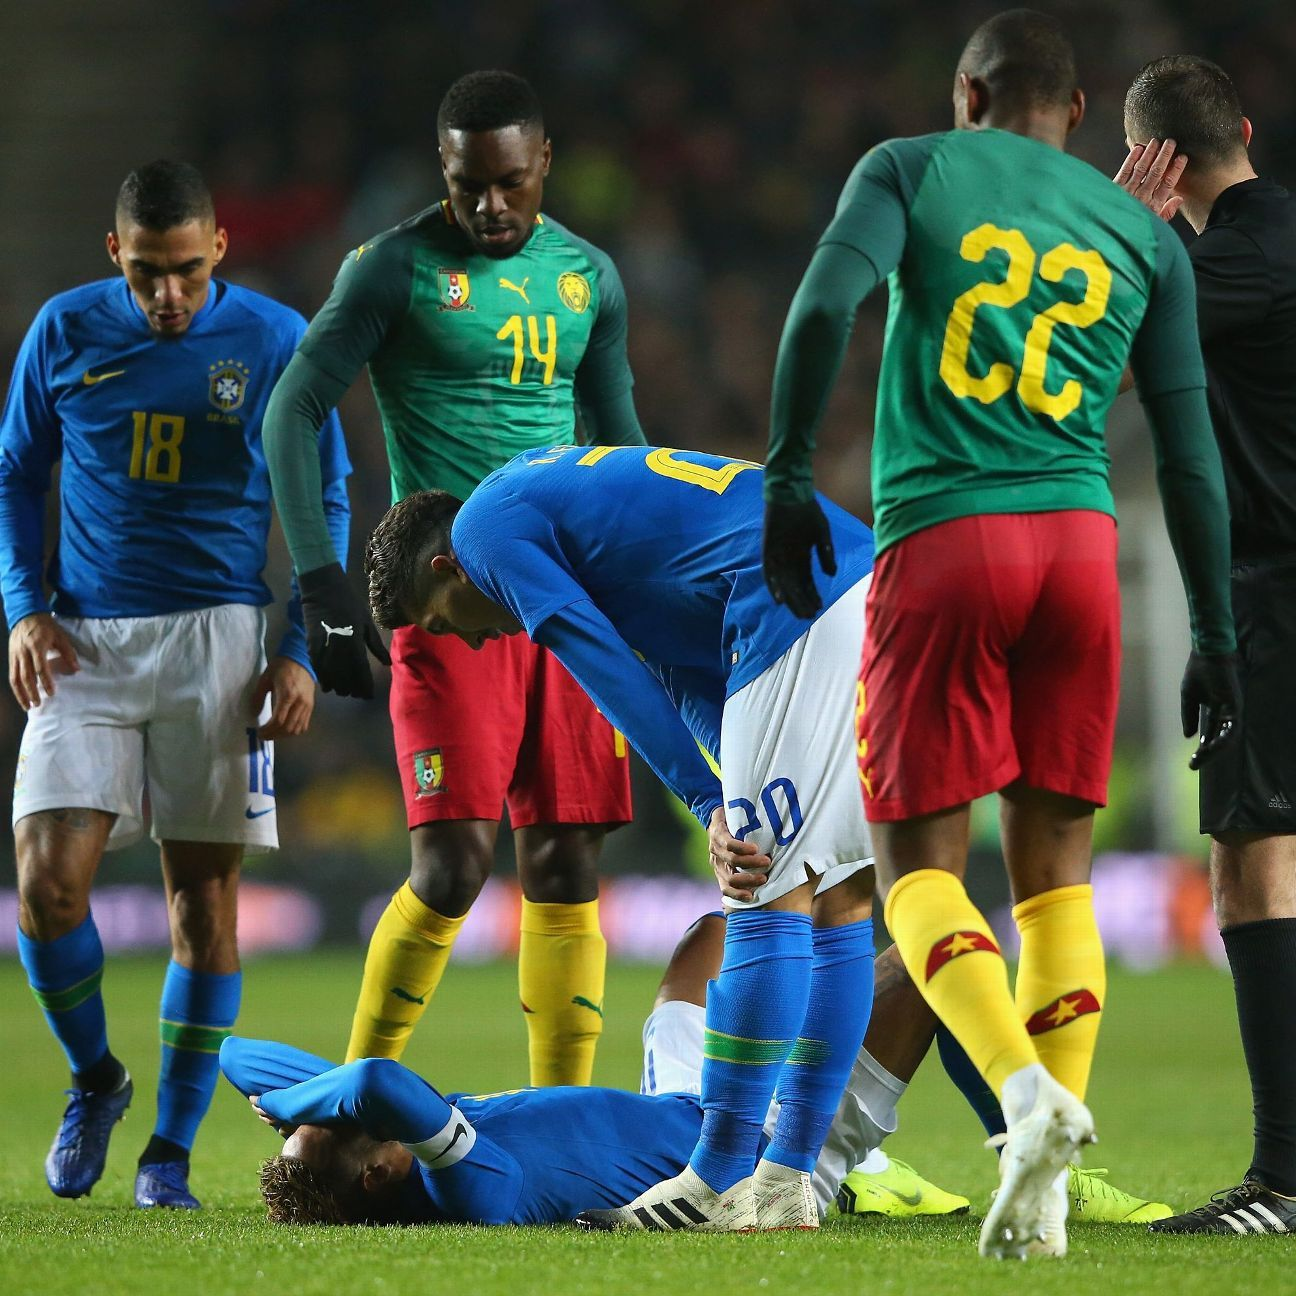 Neymar of Brazil lies injured during the International Friendly match between Brazil and Cameroon at Stadium MK on November 20, 2018 in Milton Keynes, England.